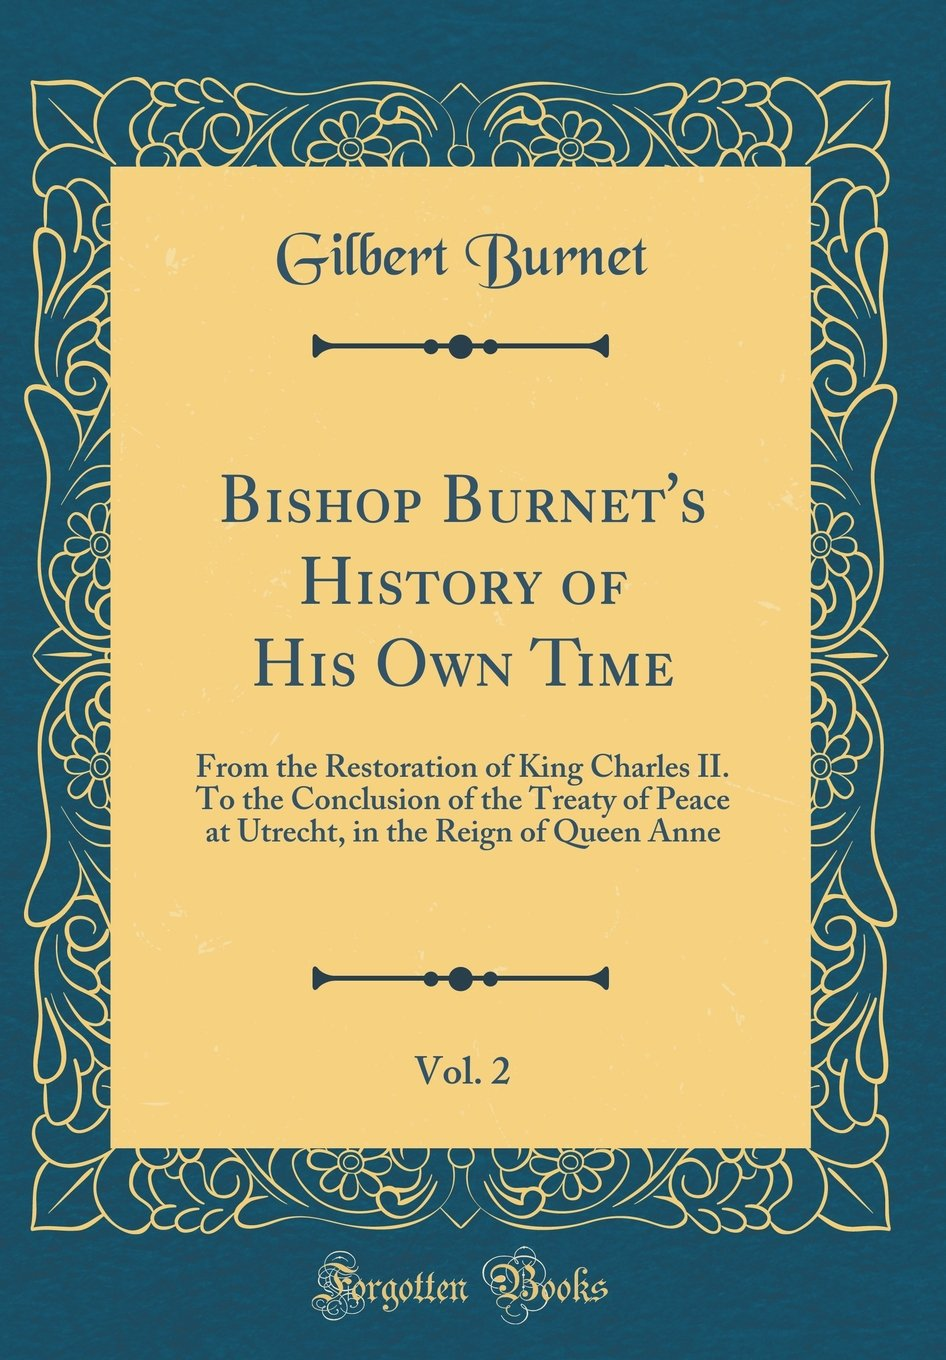 Bishop Burnet's History of His Own Time, Vol. 2: From the Restoration of King Charles II. To the Conclusion of the Treaty of Peace at Utrecht, in the Reign of Queen Anne (Classic Reprint) pdf